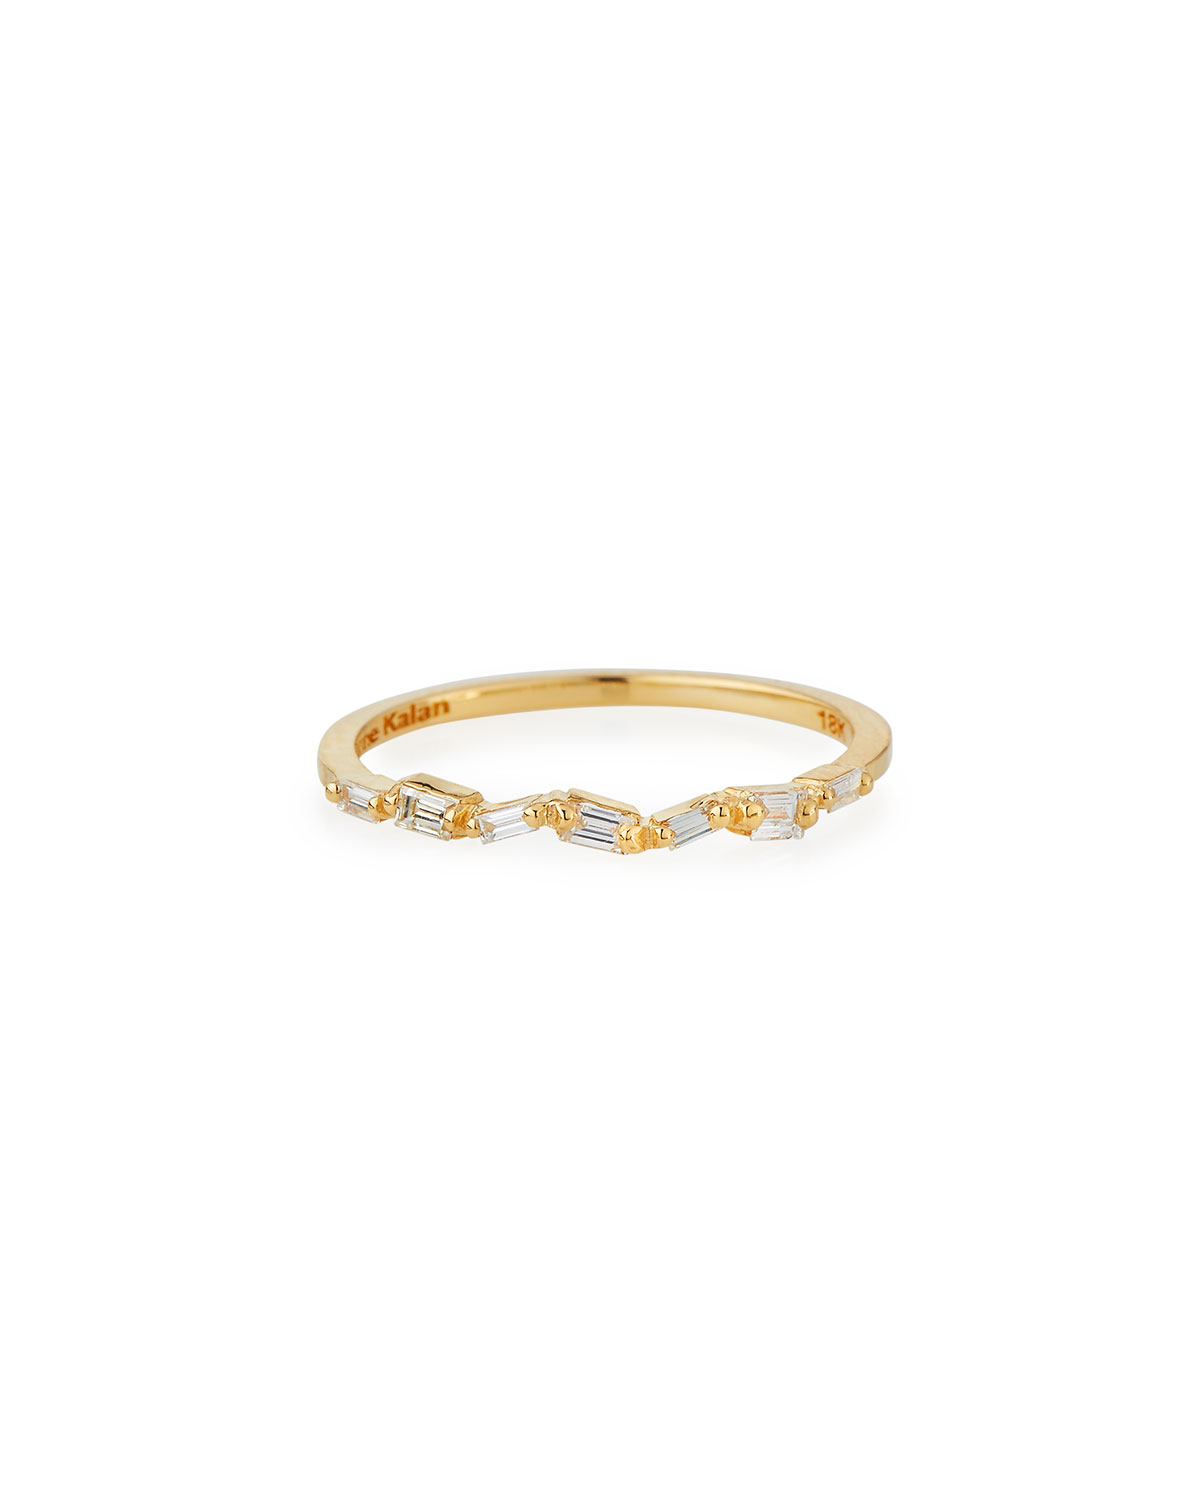 Suzanne Kalan 18K White Gold and diamond Baguette Thin Band Outlet Store kaPD5K7